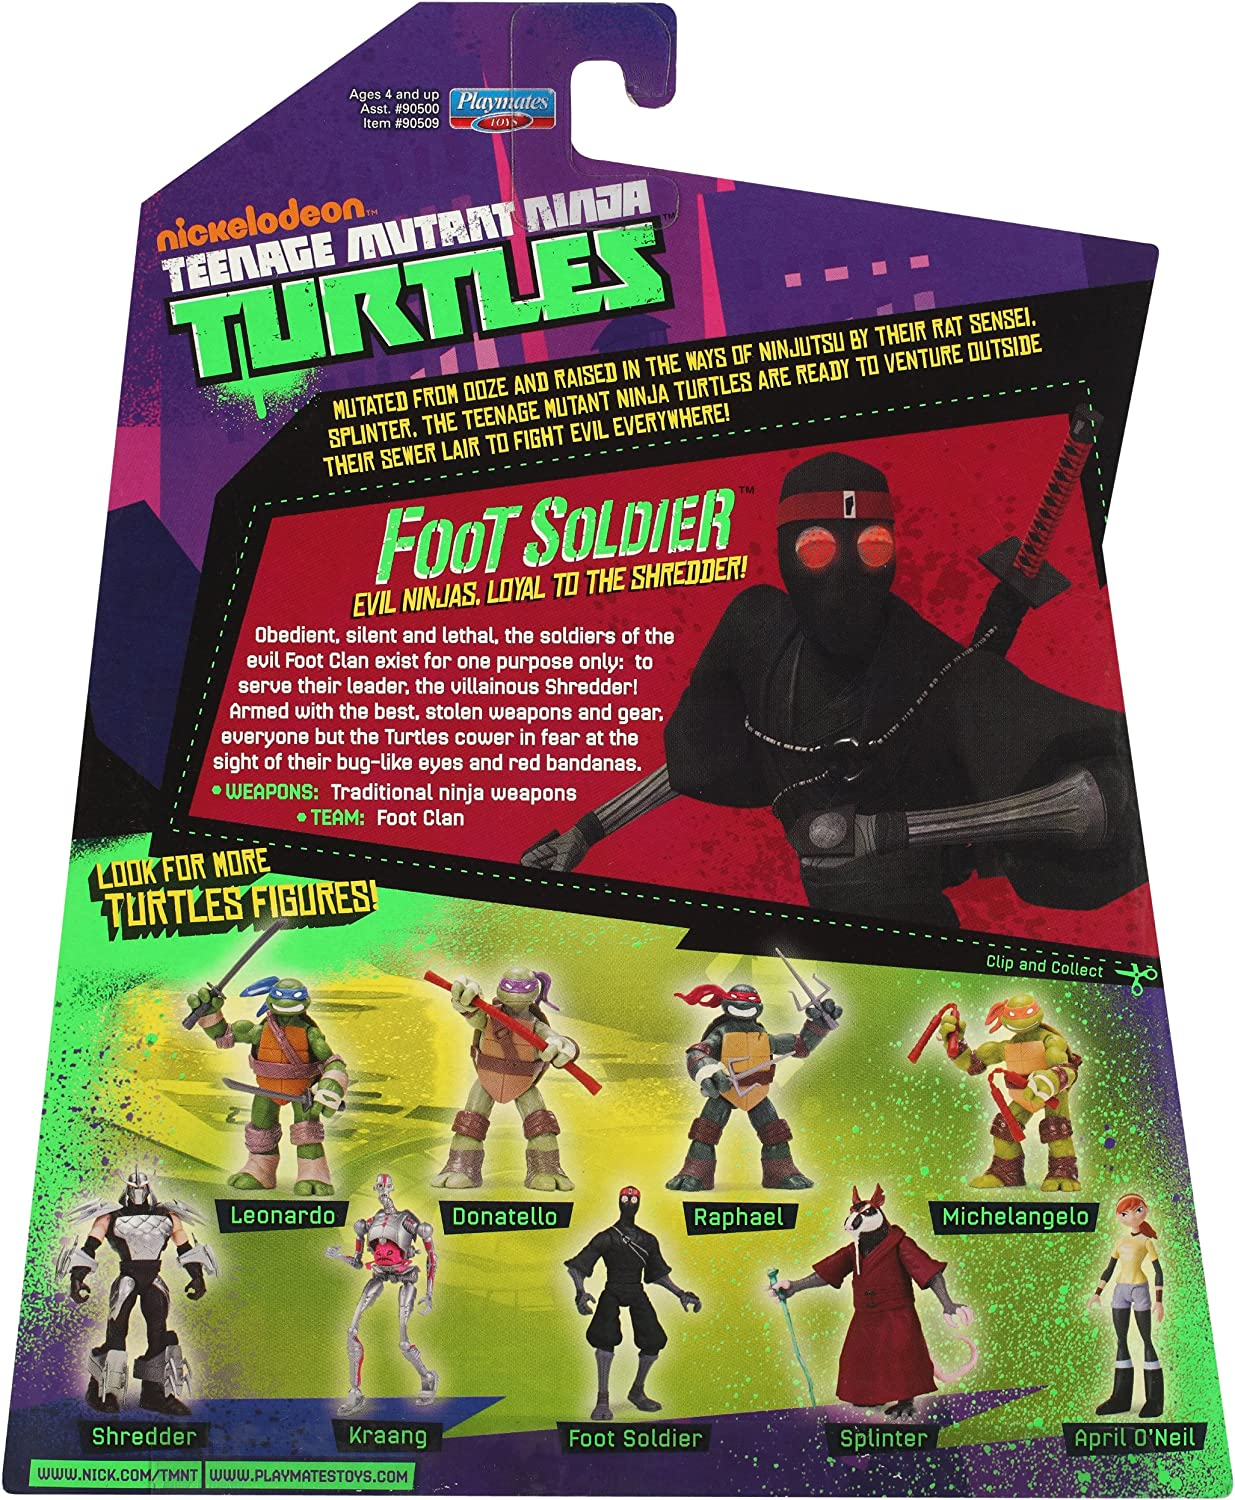 Amazon.com: Teenage Mutant Ninja Turtles Foot Soldier: Toys ...